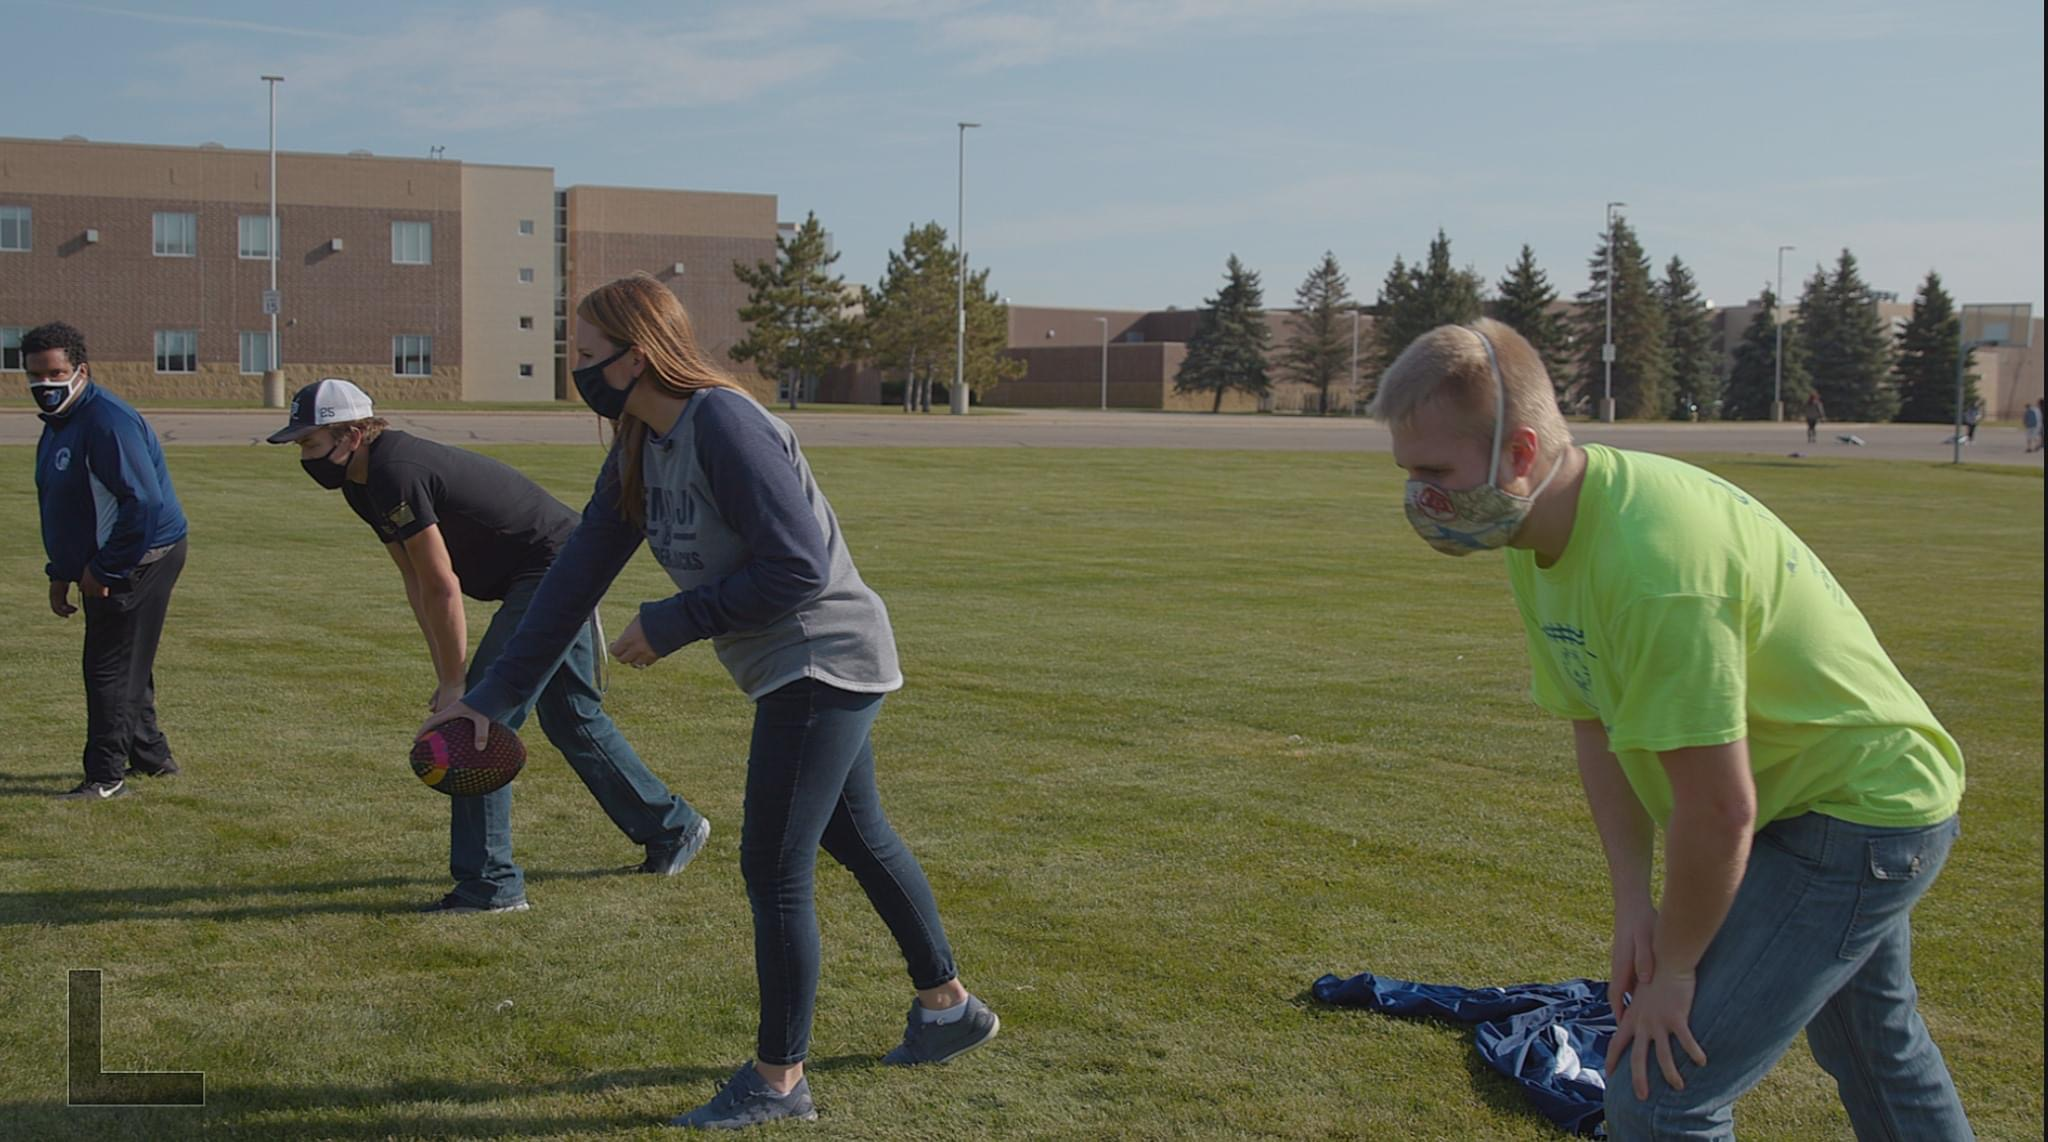 Phy Ed Teacher's Unified Program Creates Ripple Effect